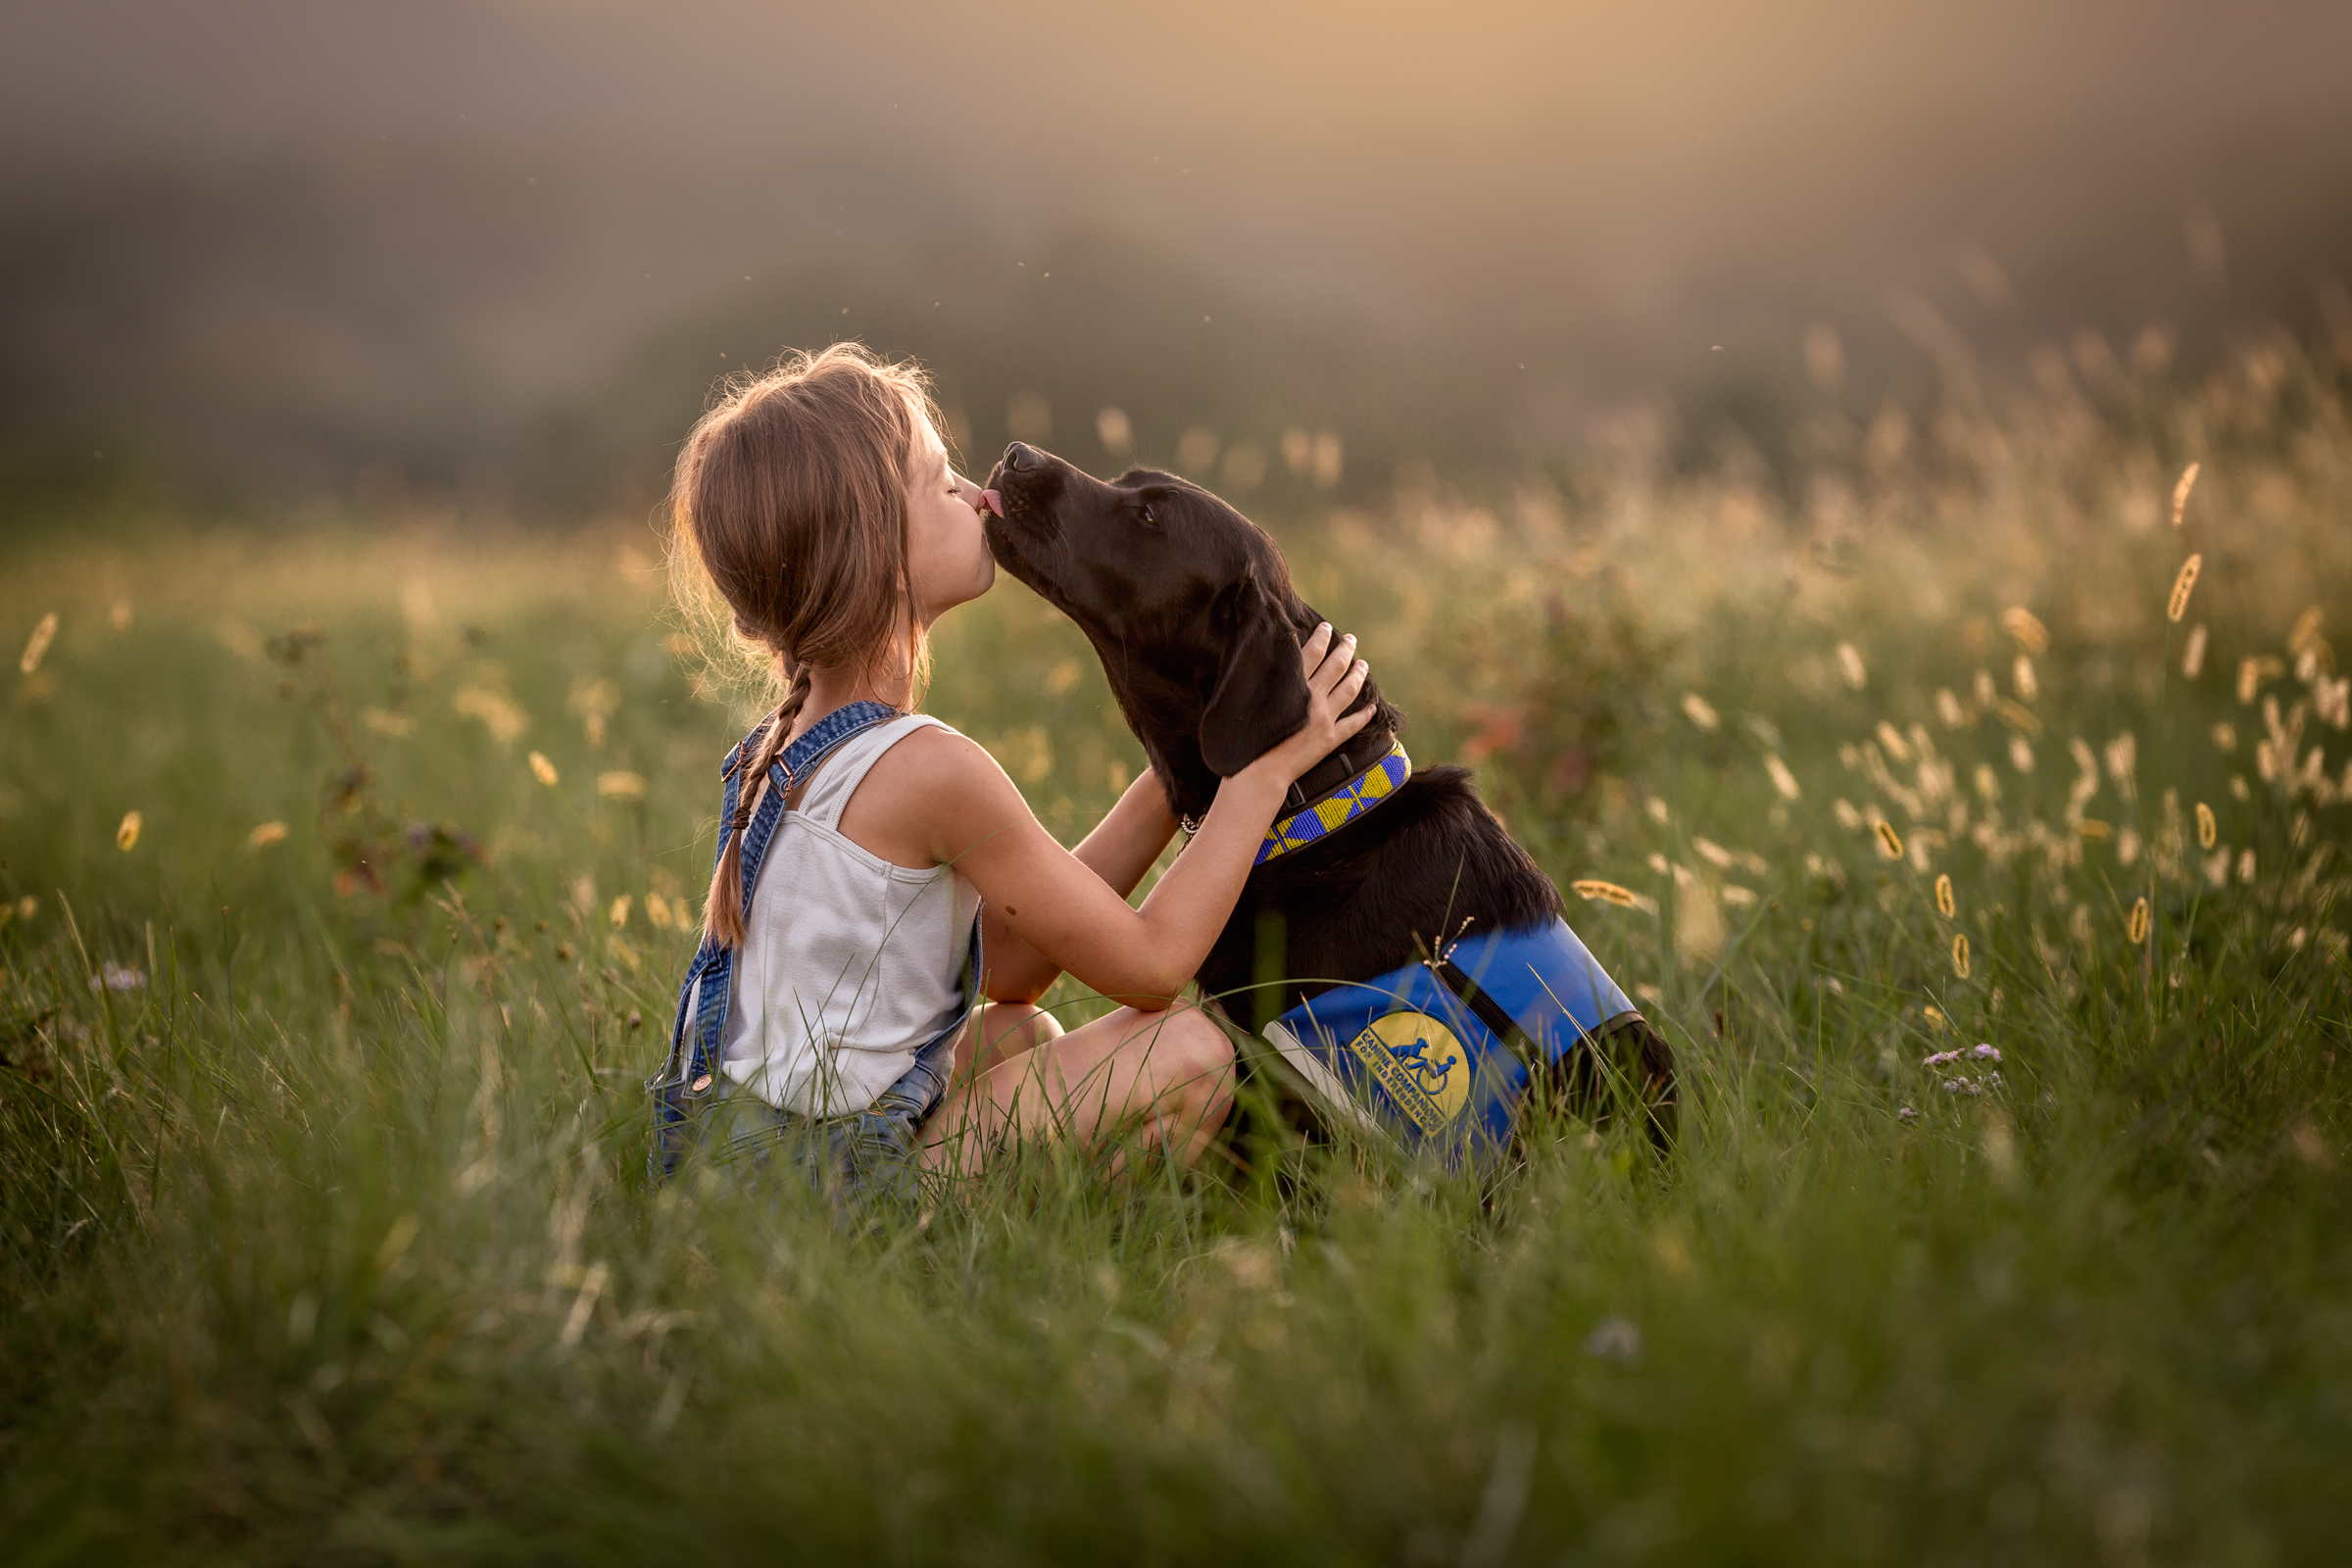 photograph of service dog licking a girls face in field in Potomac Maryland